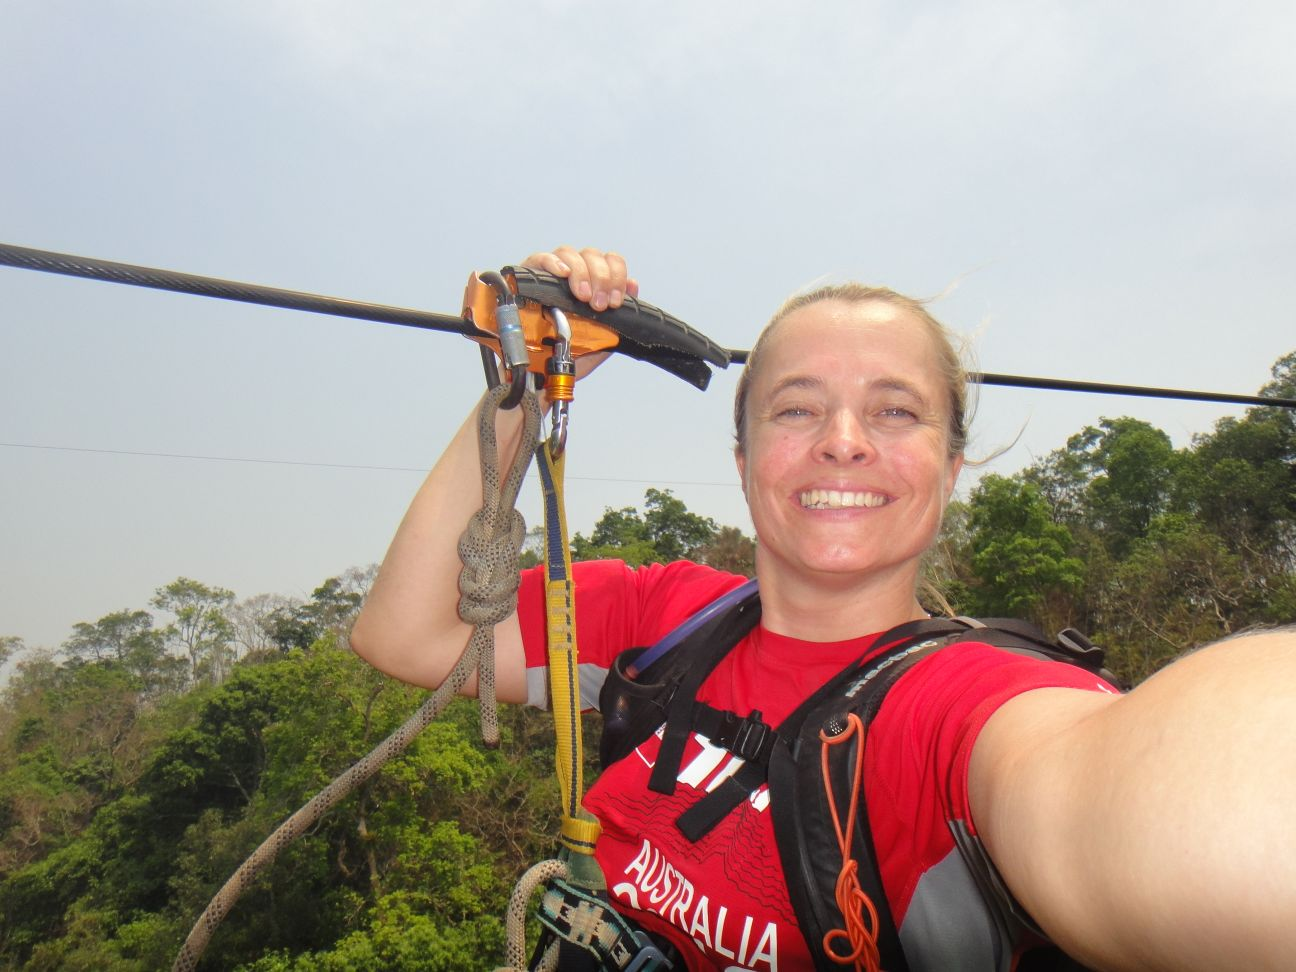 sooo much fun!! and yes, that is another zipline in the background!